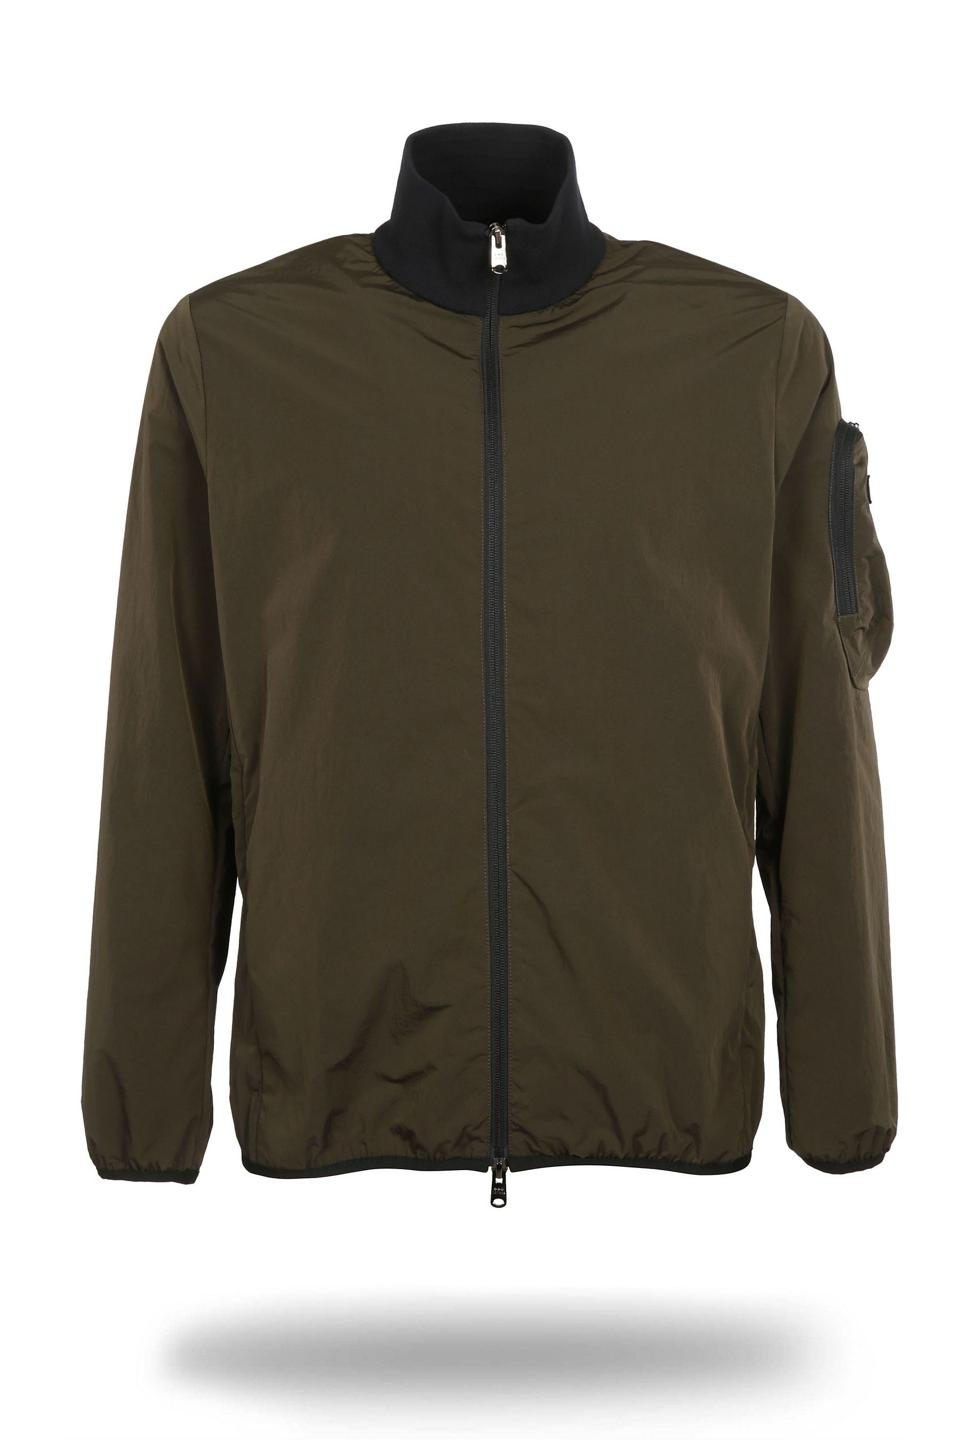 TATRAS Men's Jacket